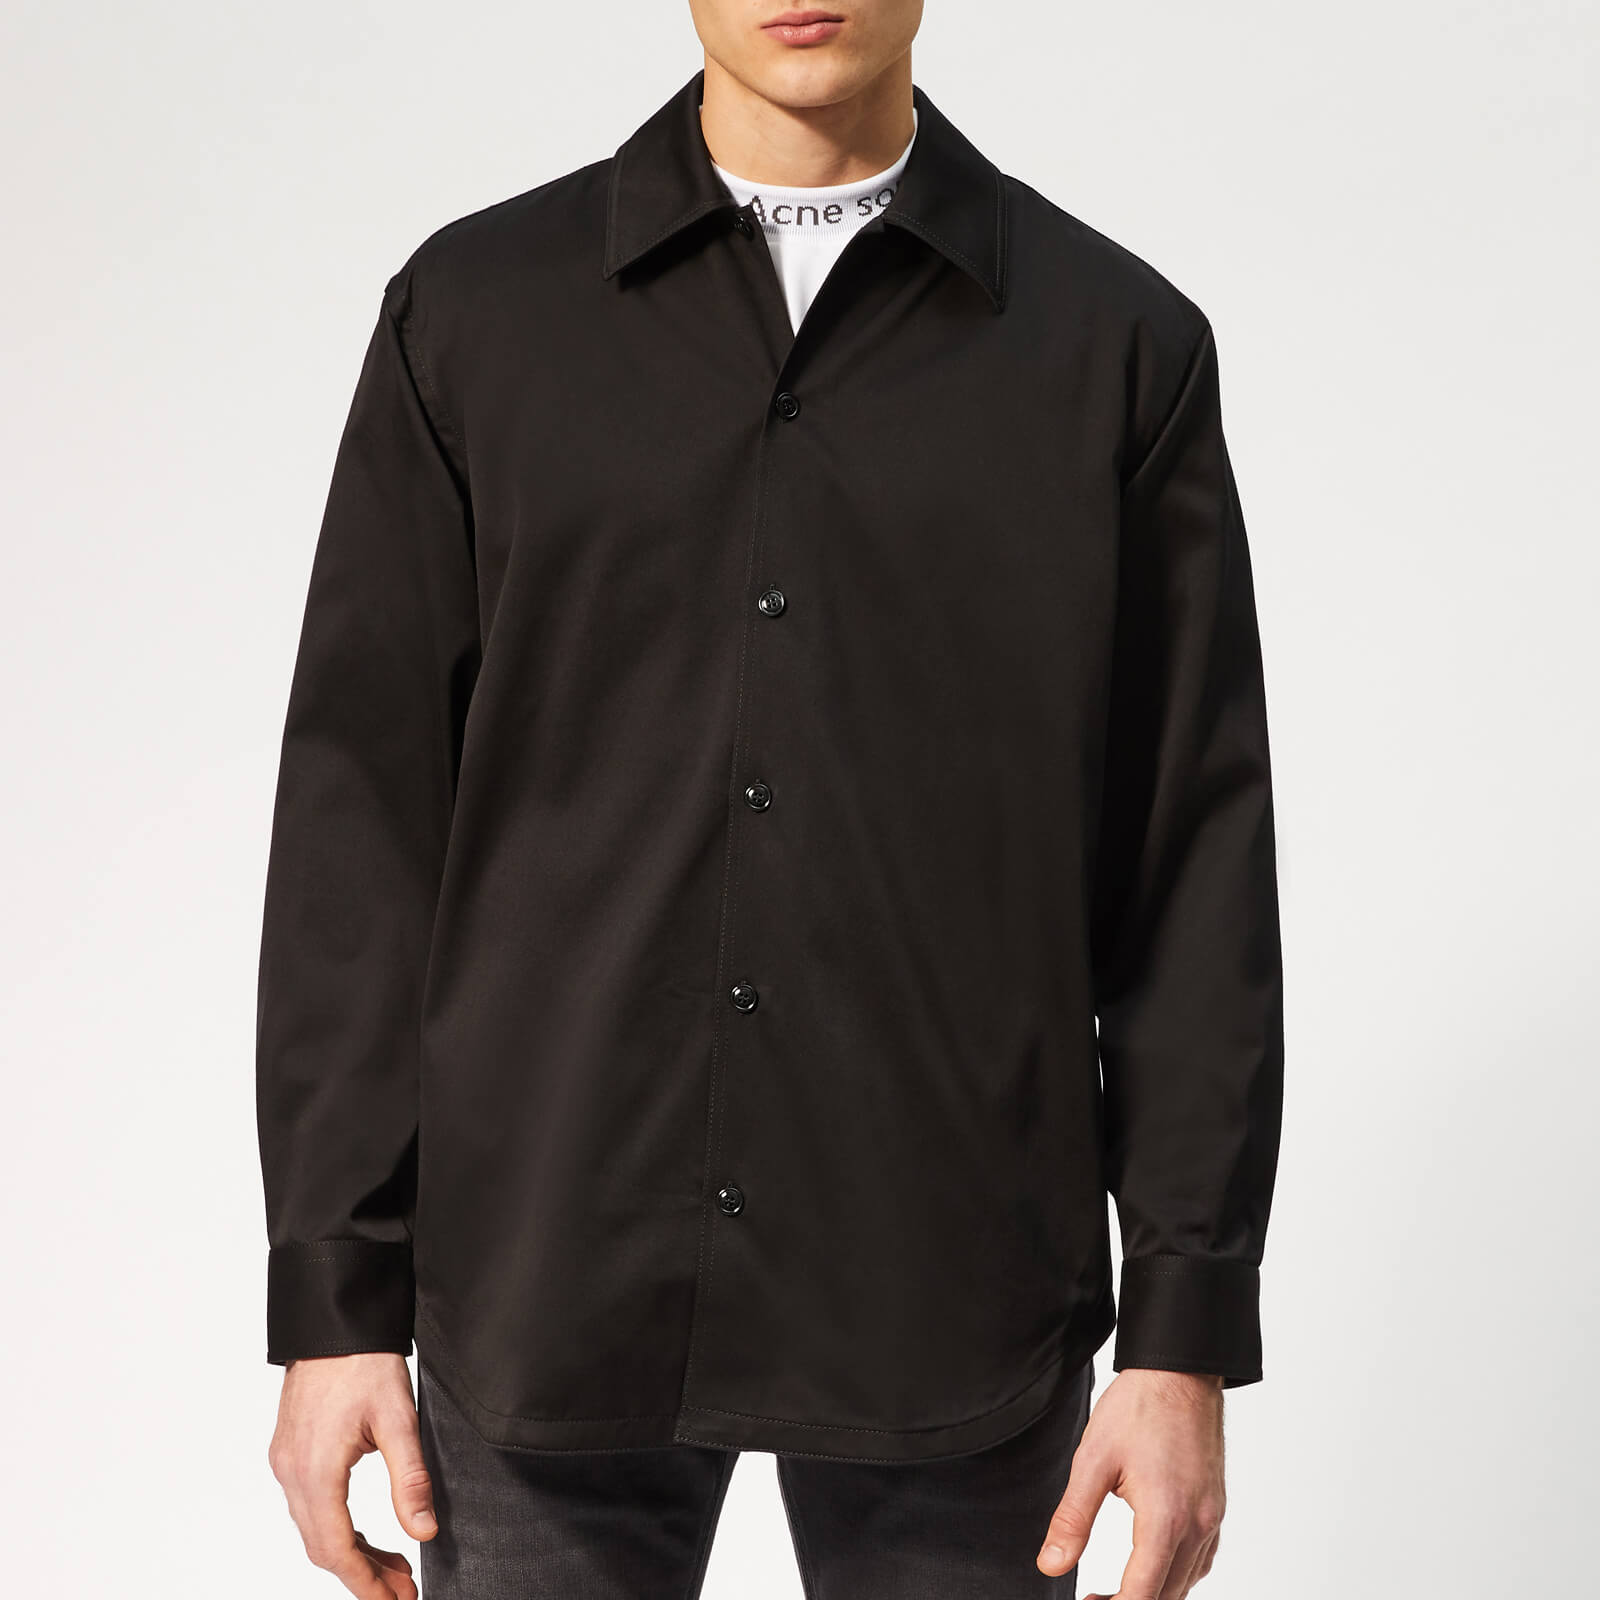 bfb8d48b30 Acne Studios Men s Houston Oversized Shirt - Black - Free UK Delivery over £ 50